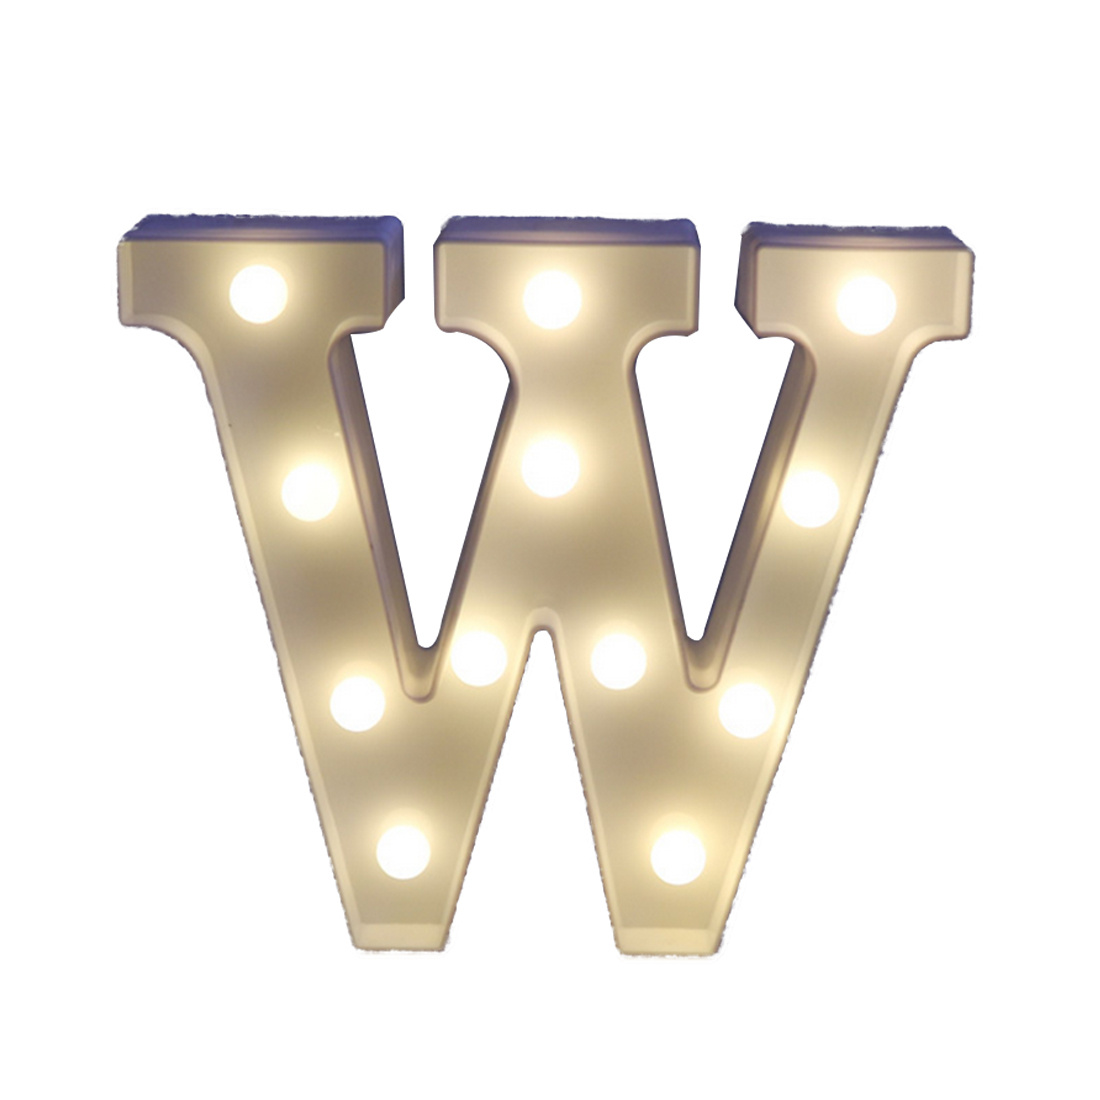 Decoration Wedding Party Window Display Light U-z Light Up Decoration Symbol Indoor Wall Alphabet Letter Led Light White